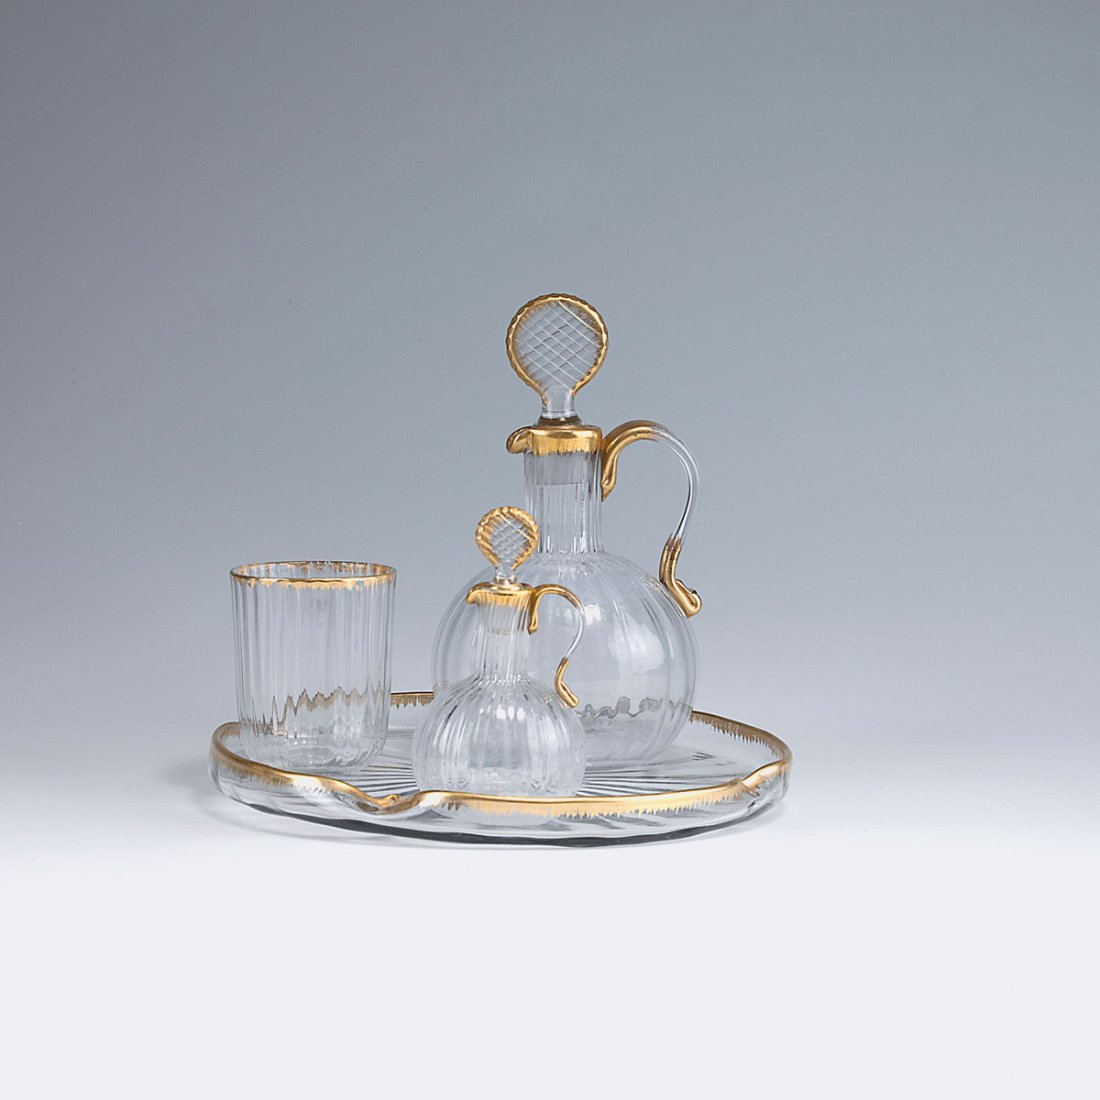 Drinking set for a bedside table, c1891